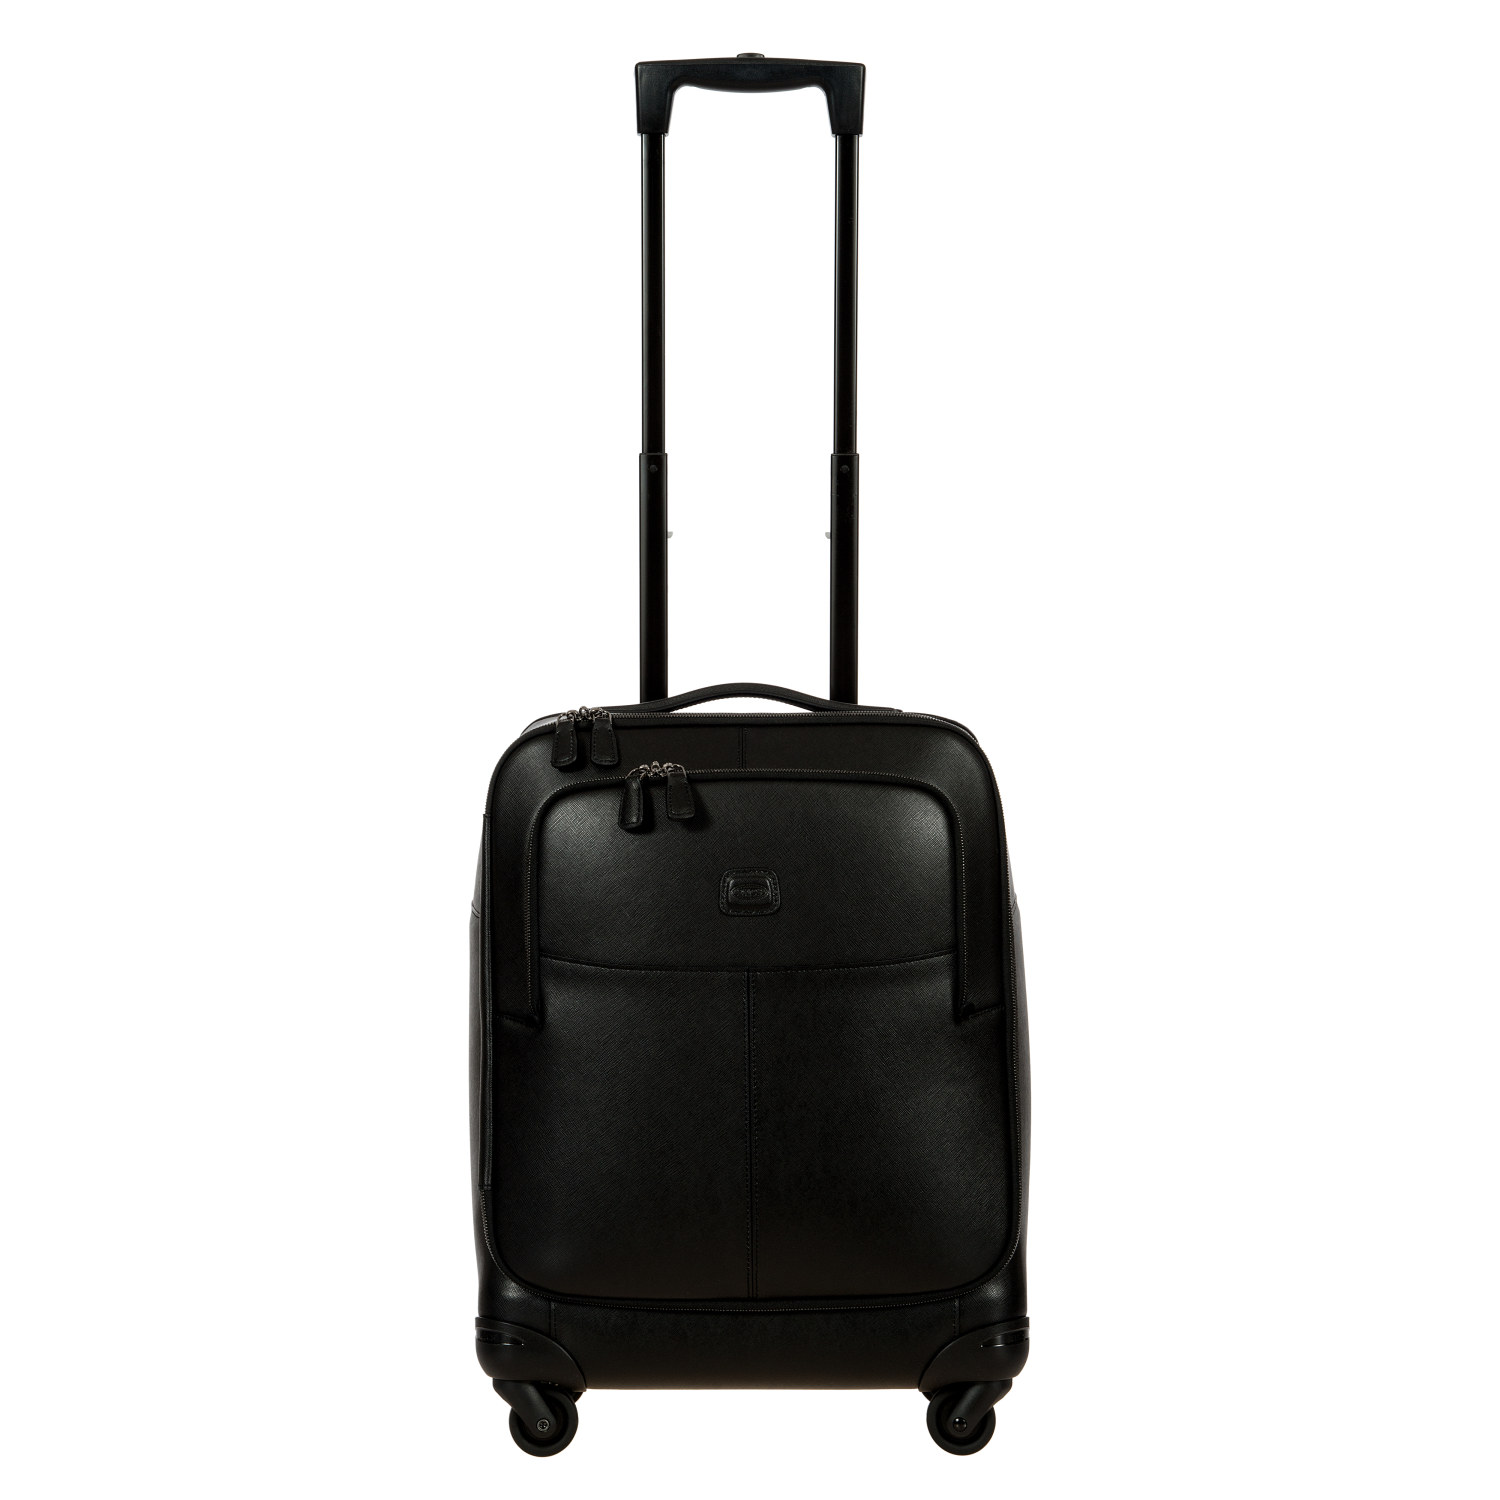 "The Varese 21"" Carry-On Spinner by BRIC'S is finely handcrafted in Italy, with full grain Tuscan Saffiano leather. The crosshatch pattern of Saffiano leather is timeless and lends a sophistication to the black-on-black line."